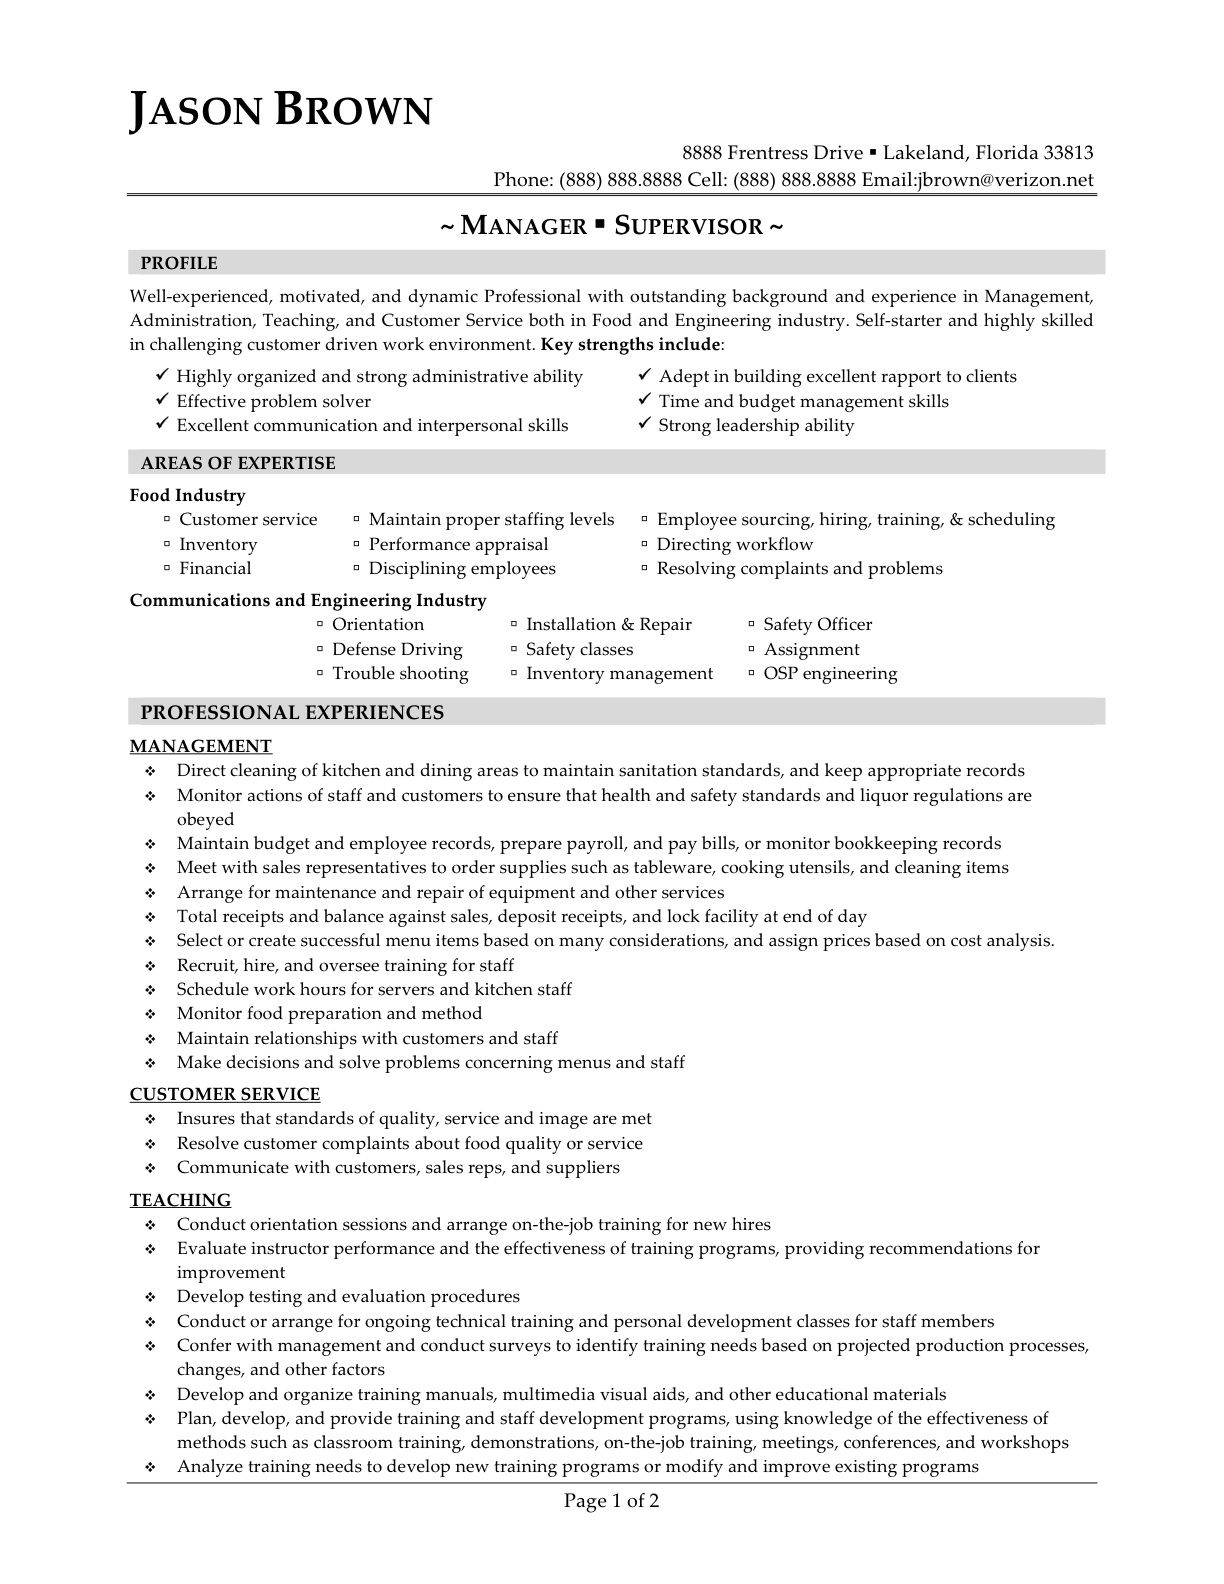 Supervisor resume sample free call center supervisor resume sample food services manager sample resume bar worker cover letter for restaurant general supervisor management areas best free home design idea madrichimfo Gallery